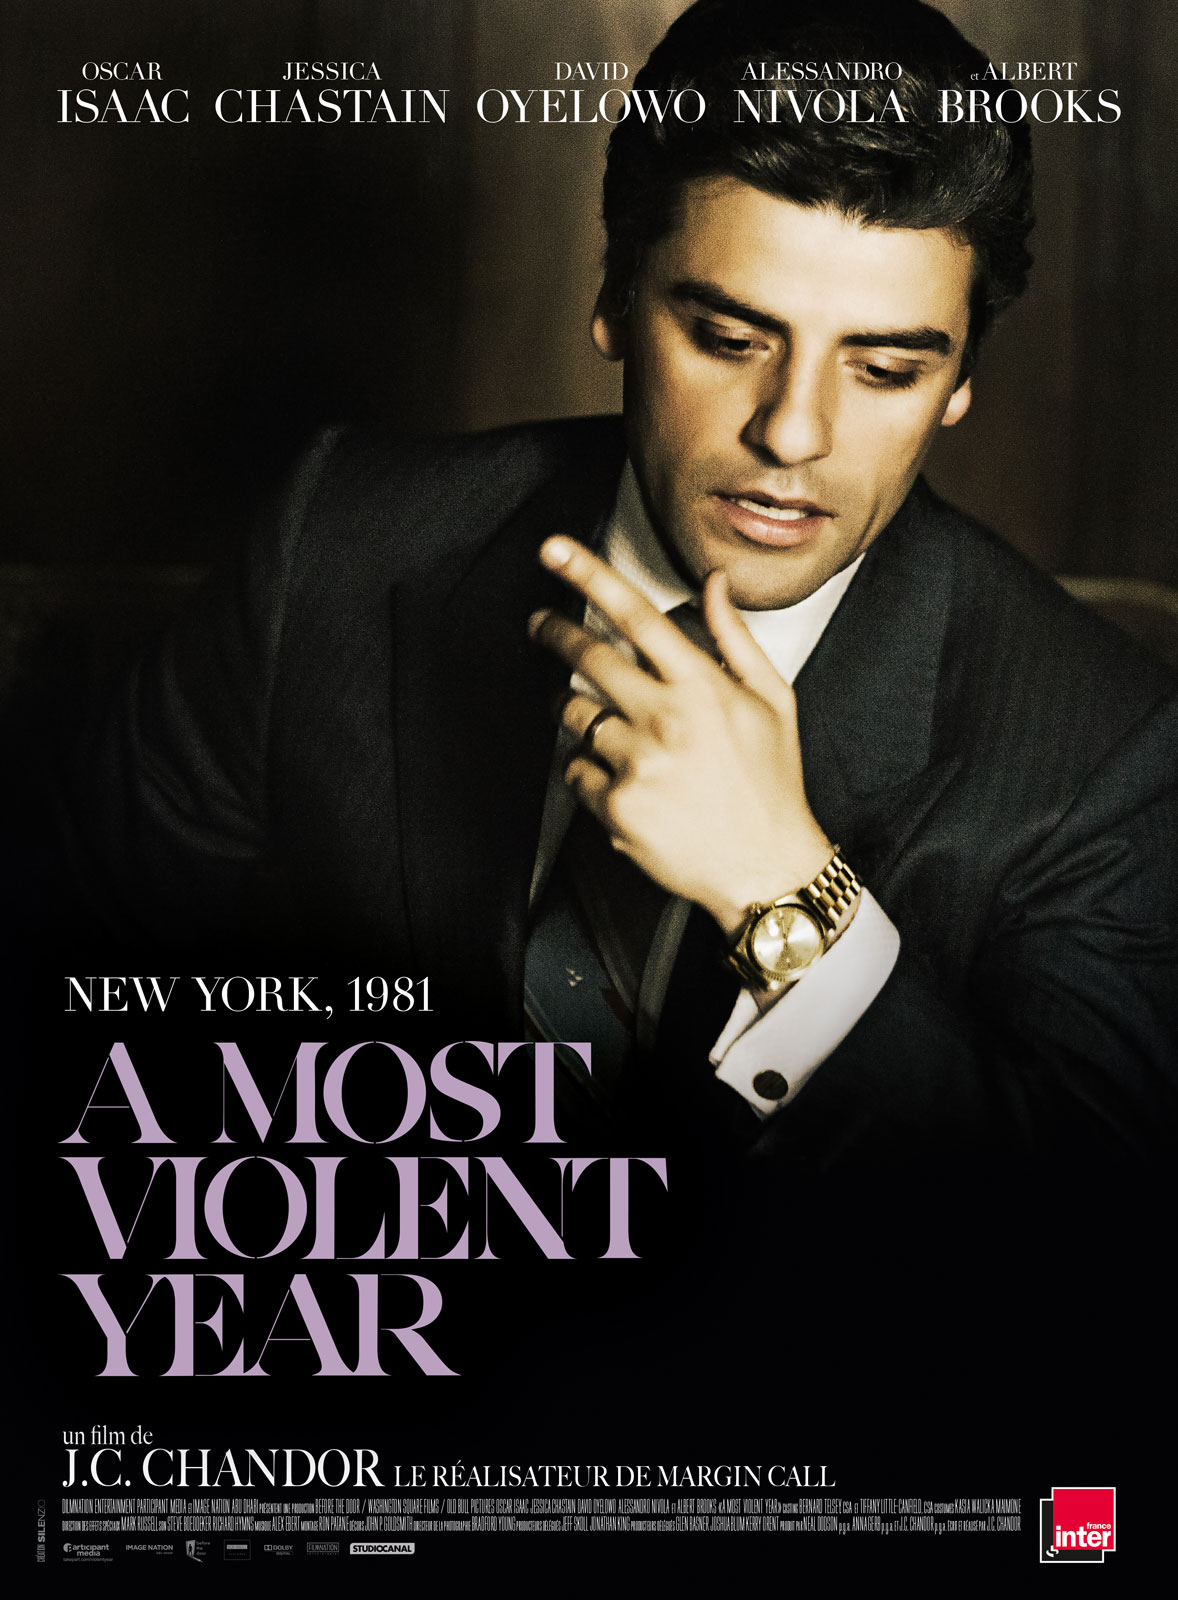 A MOST VIOLENT YEAR-Official Poster XLG-12DEZEMBRO2014-02